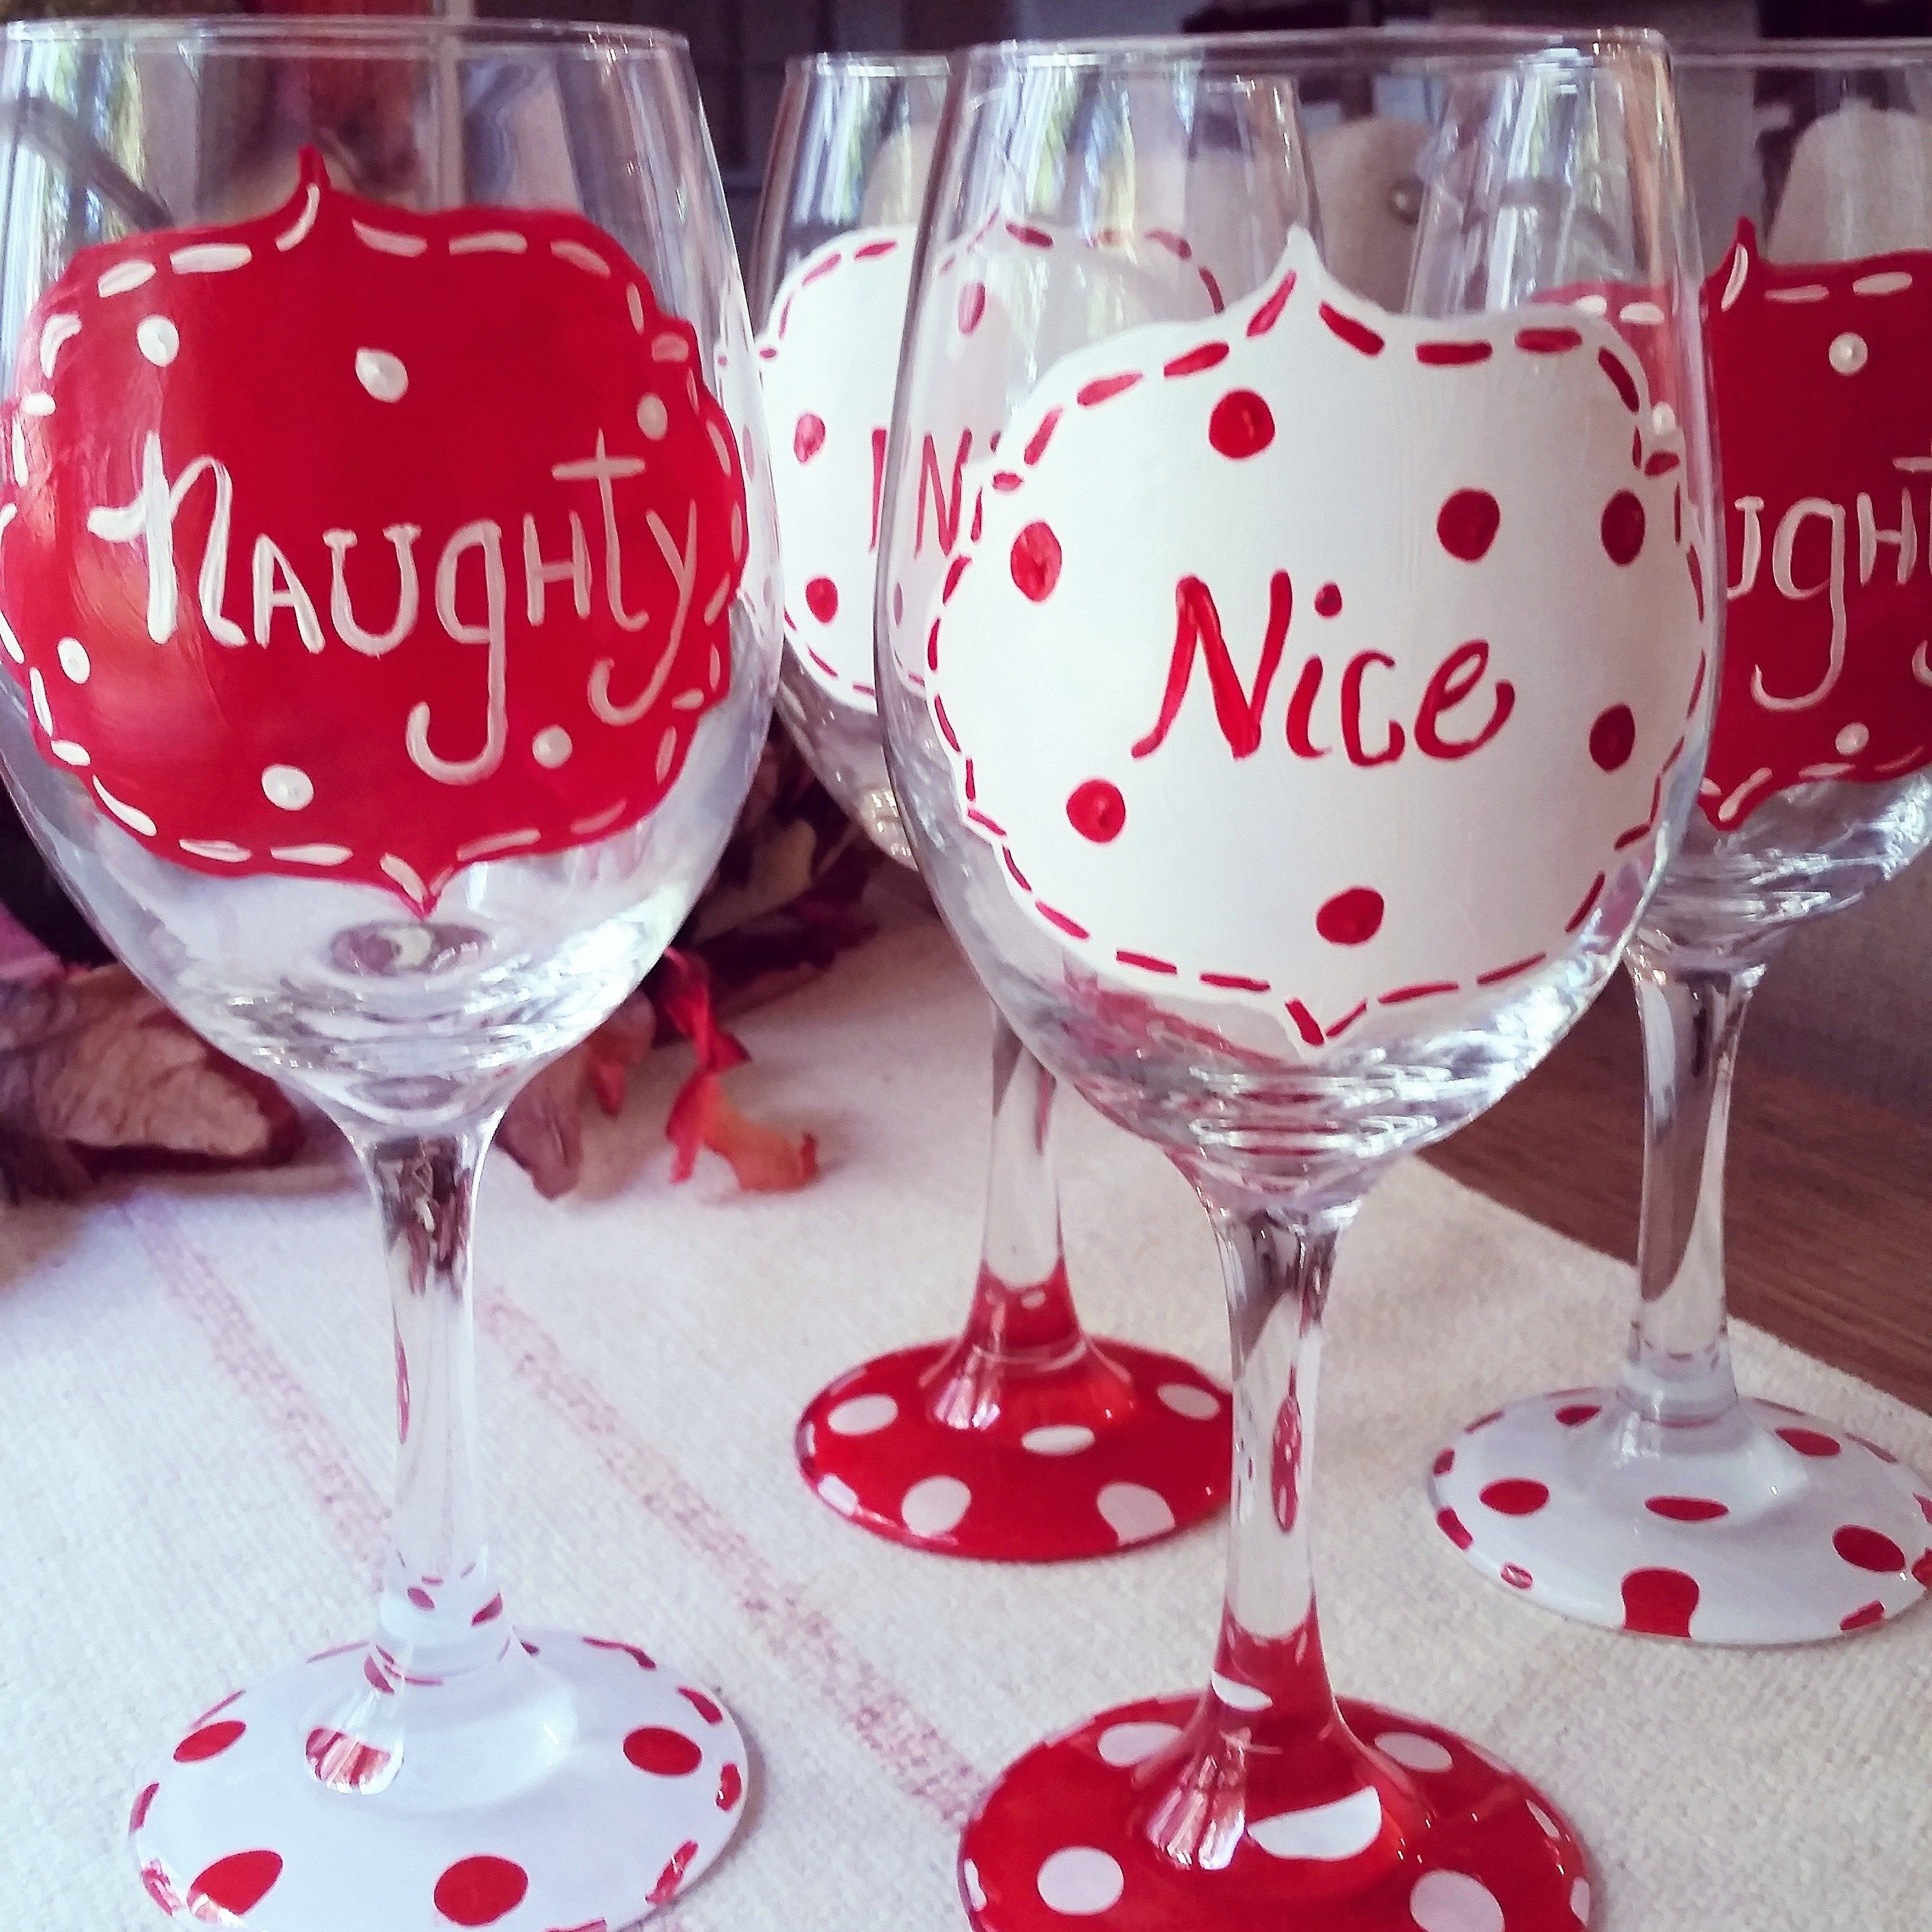 Naughty Or Nice Hand Painted Wine Glasses Pair Of 2 By Interiorlandscapes On Etsy Hand Painted Wine Glasses Painted Wine Glasses Wine Glasses